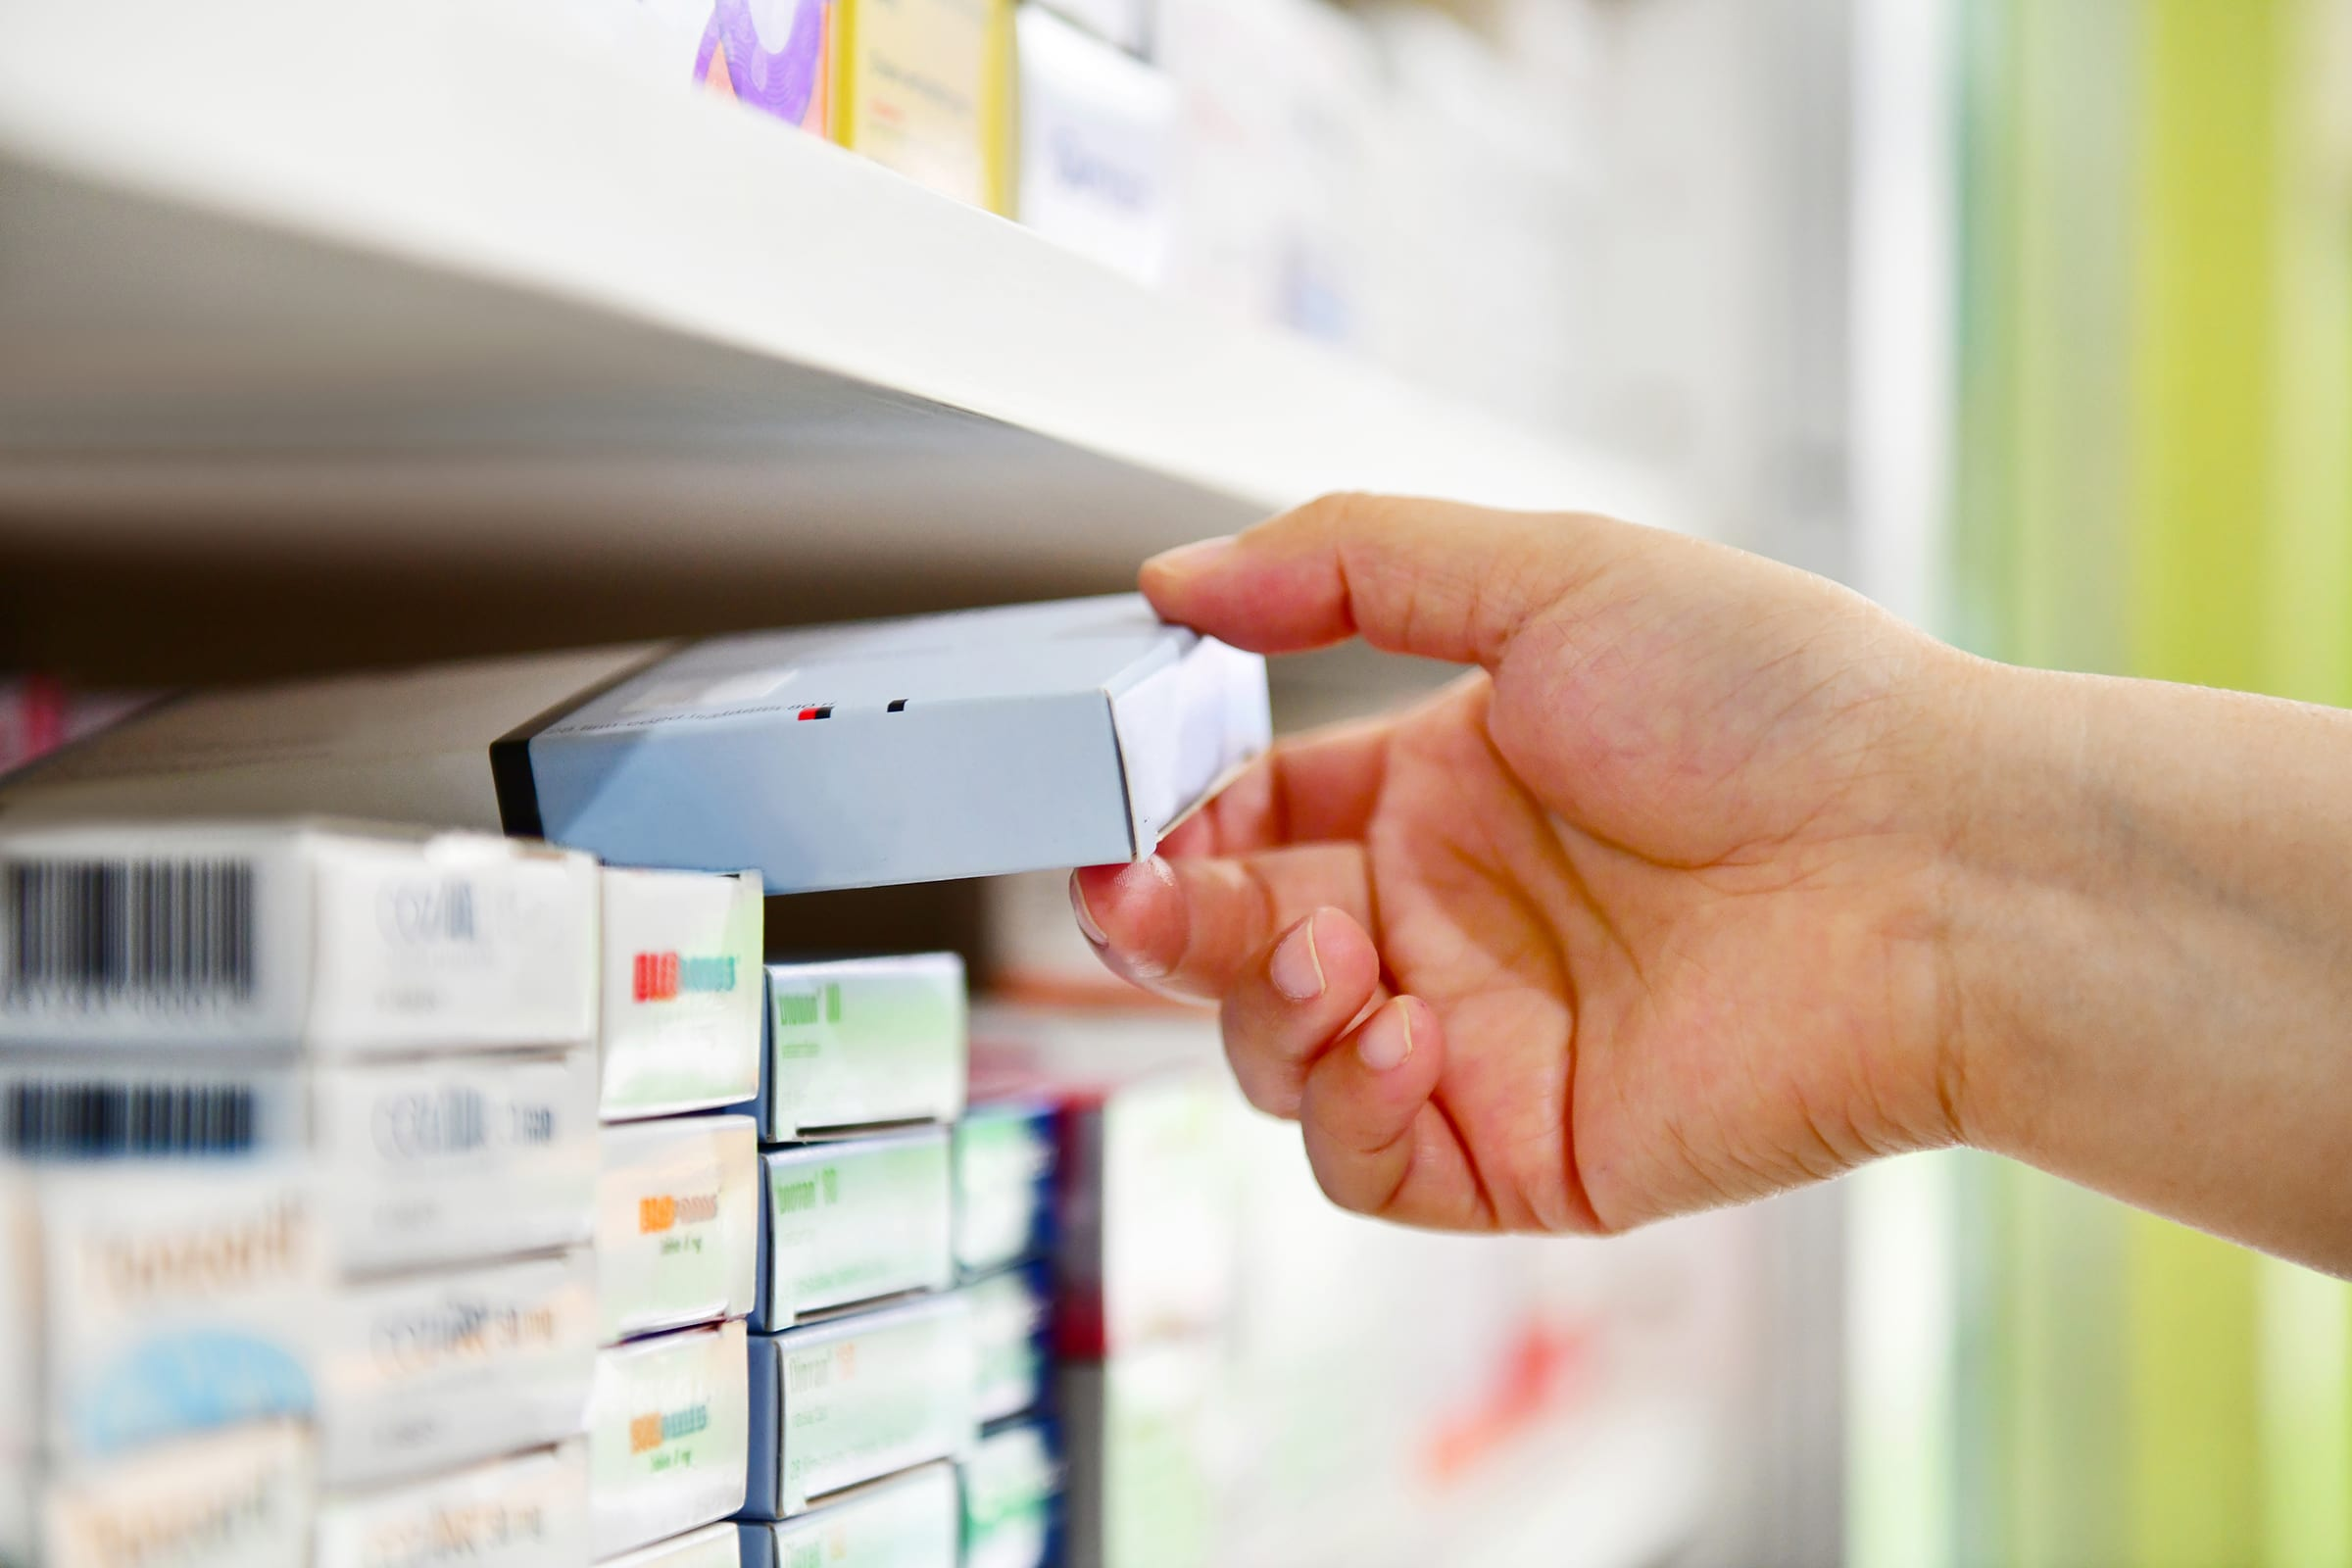 hand shelving medications